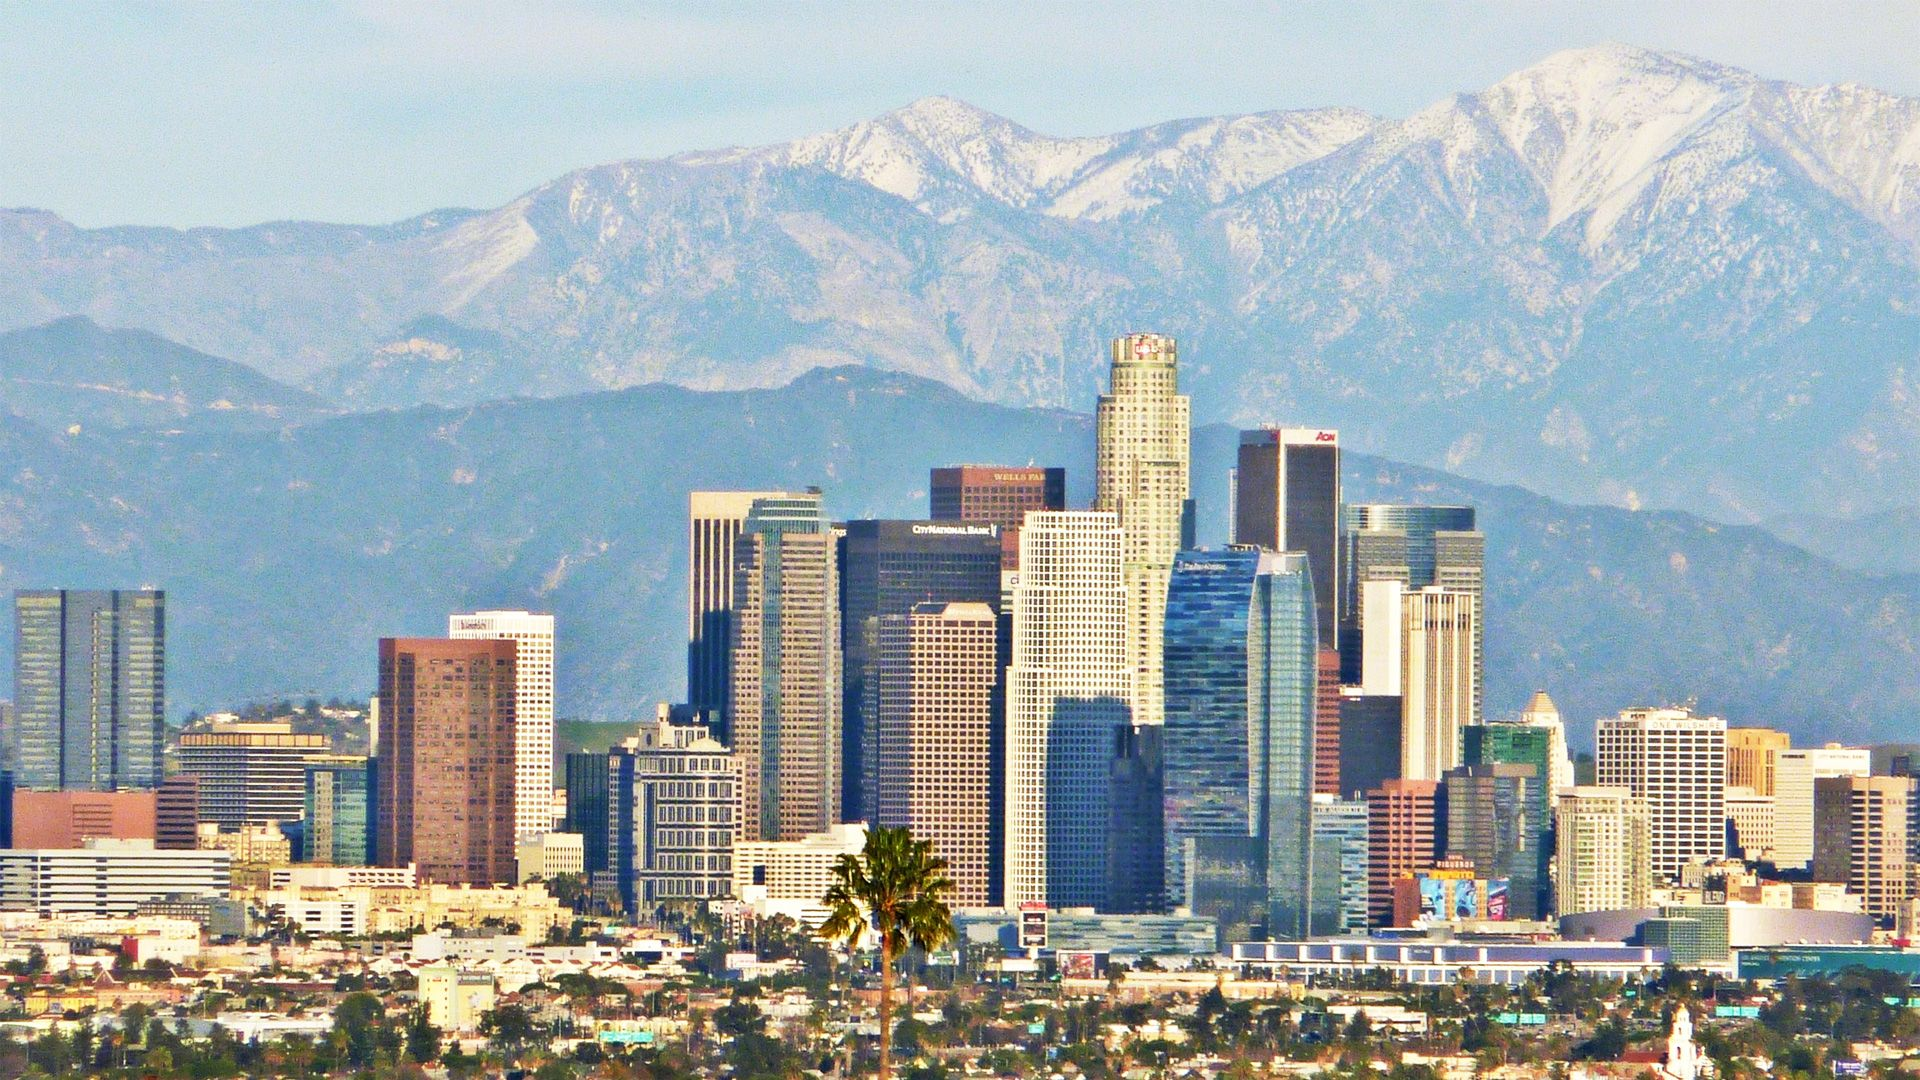 Pin By Grace Huang On City Buildings Skylines Cheap Places To Travel Places To Travel Los Angeles